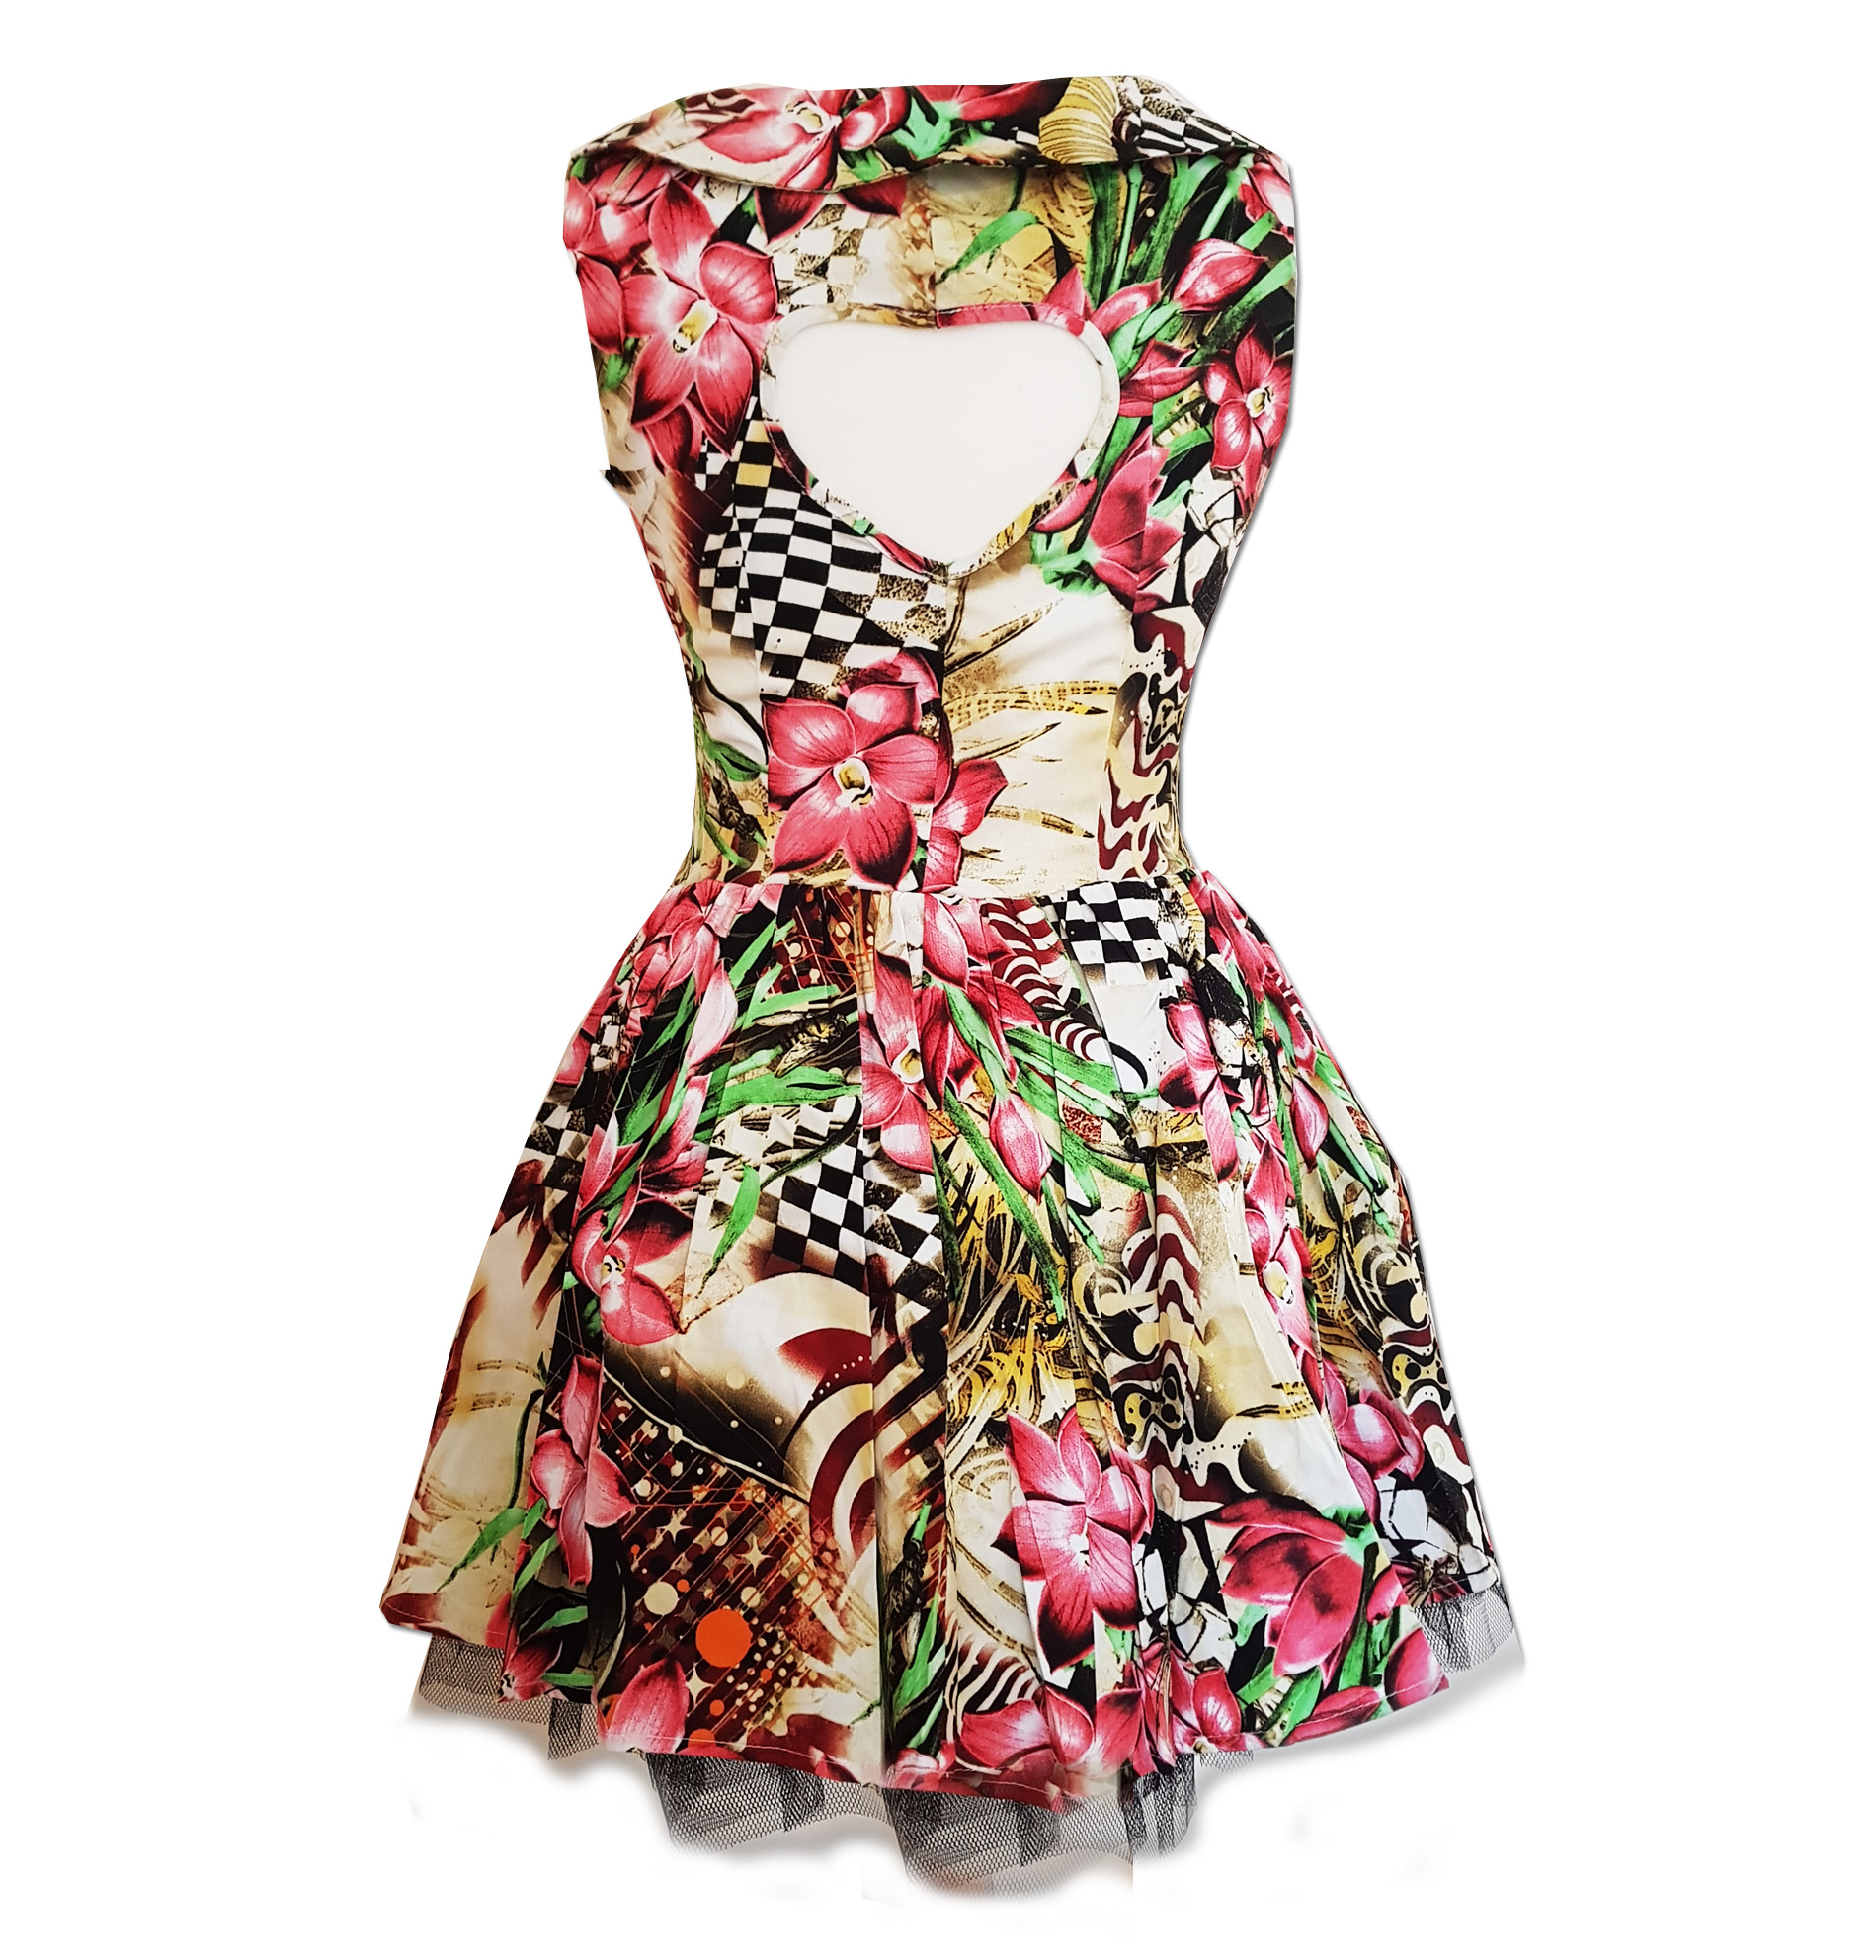 H-amp-R-Hearts-amp-Roses-London-Pink-Mini-Dress-039-Lily-Checkerboard-039-Flowers-All-Sizes thumbnail 5